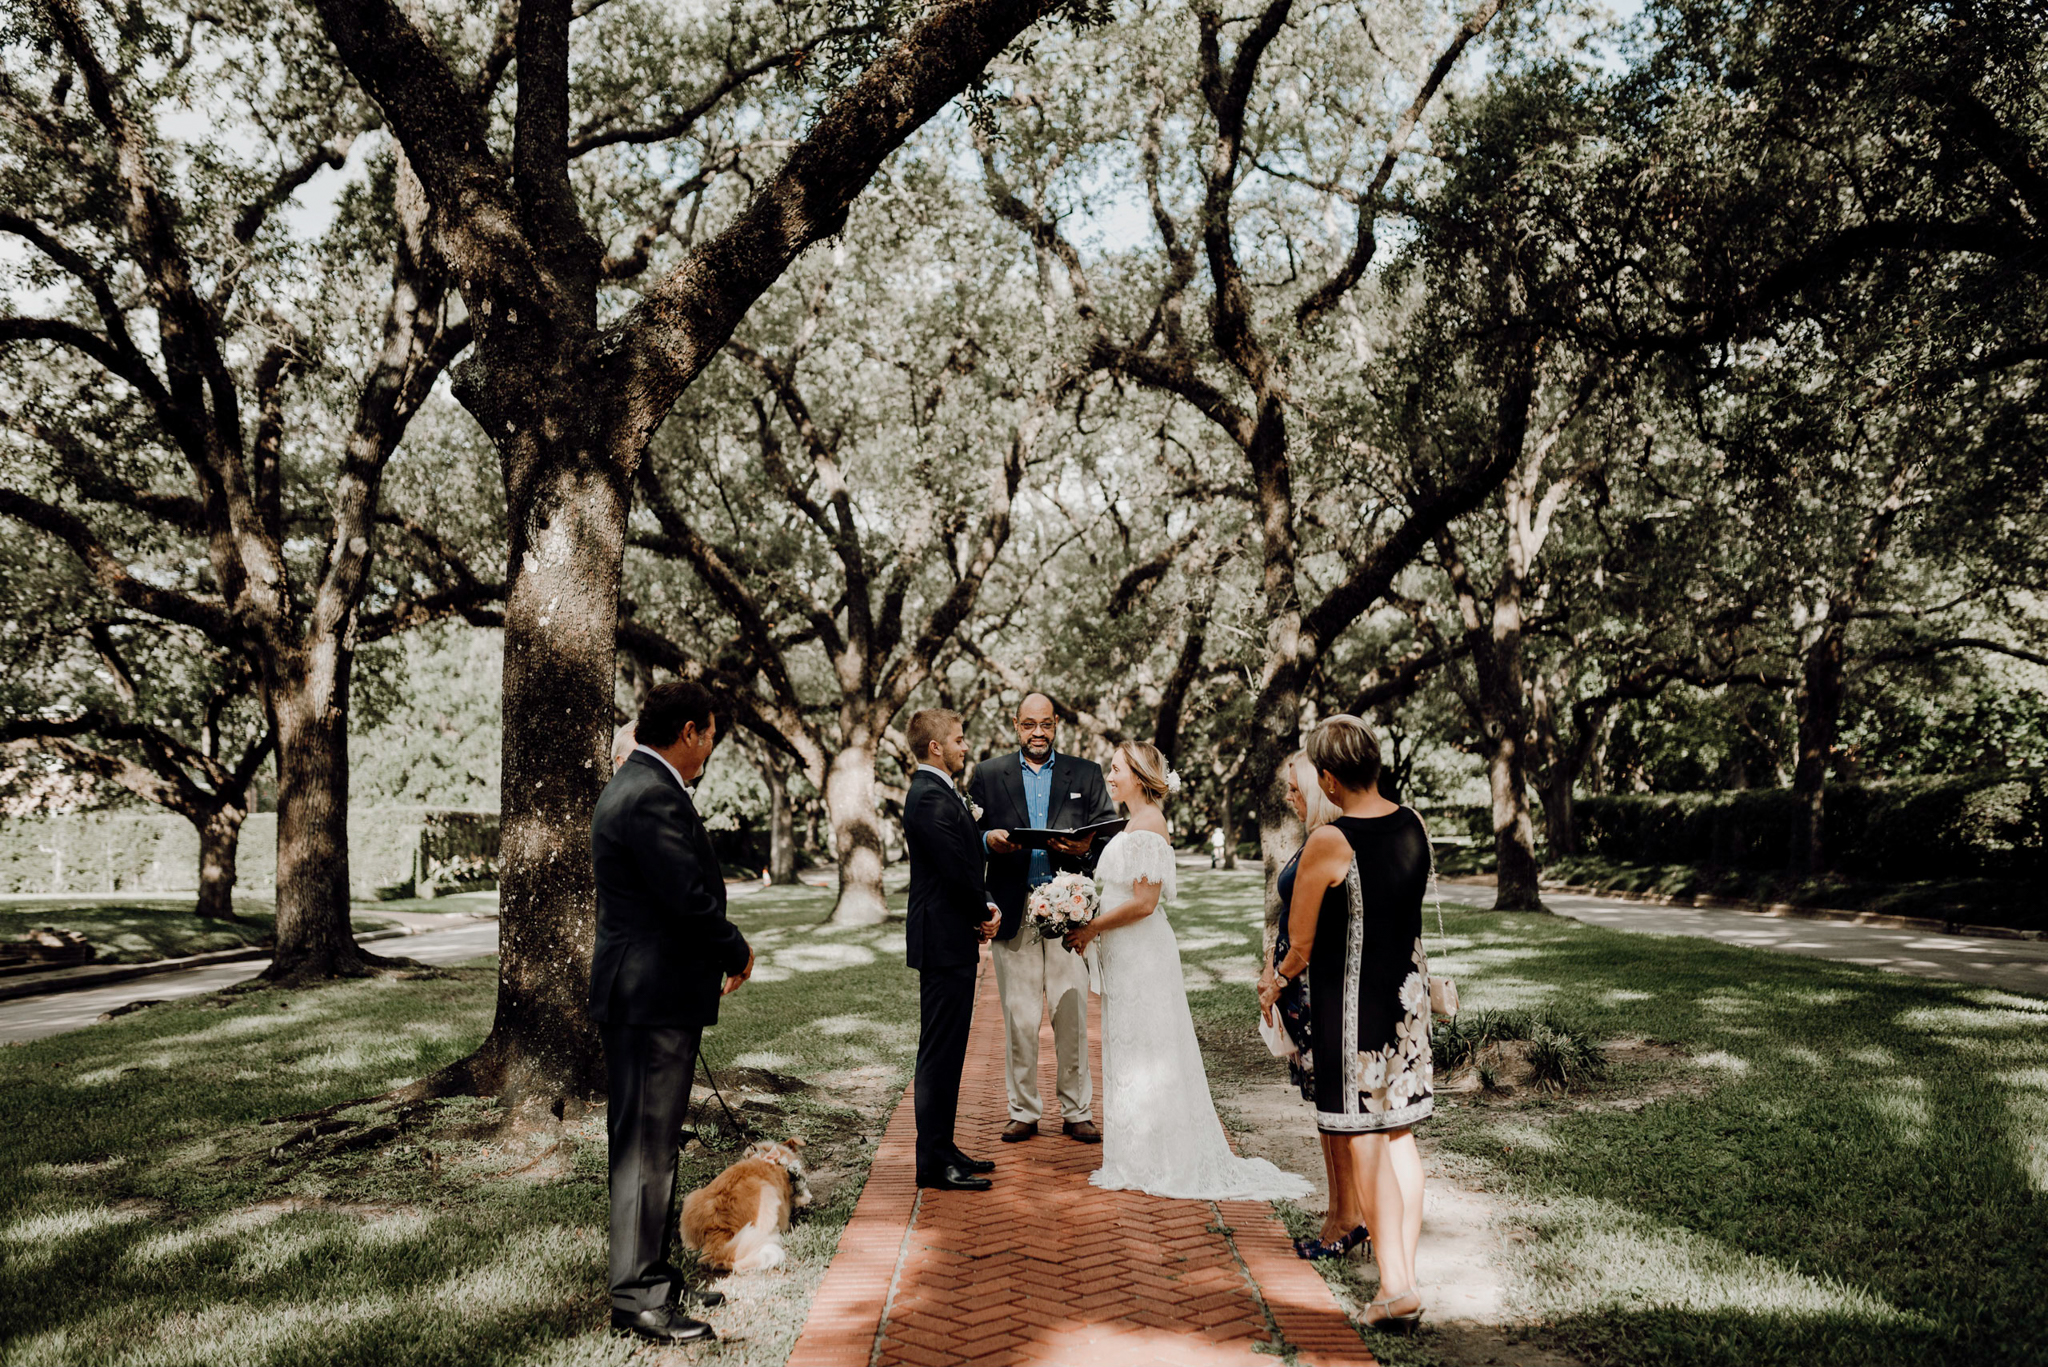 Houston Wedding Photographer-North Blvd Intimate Elopement- Houston Wedding Photographer -Kristen Giles Photography-5.jpg